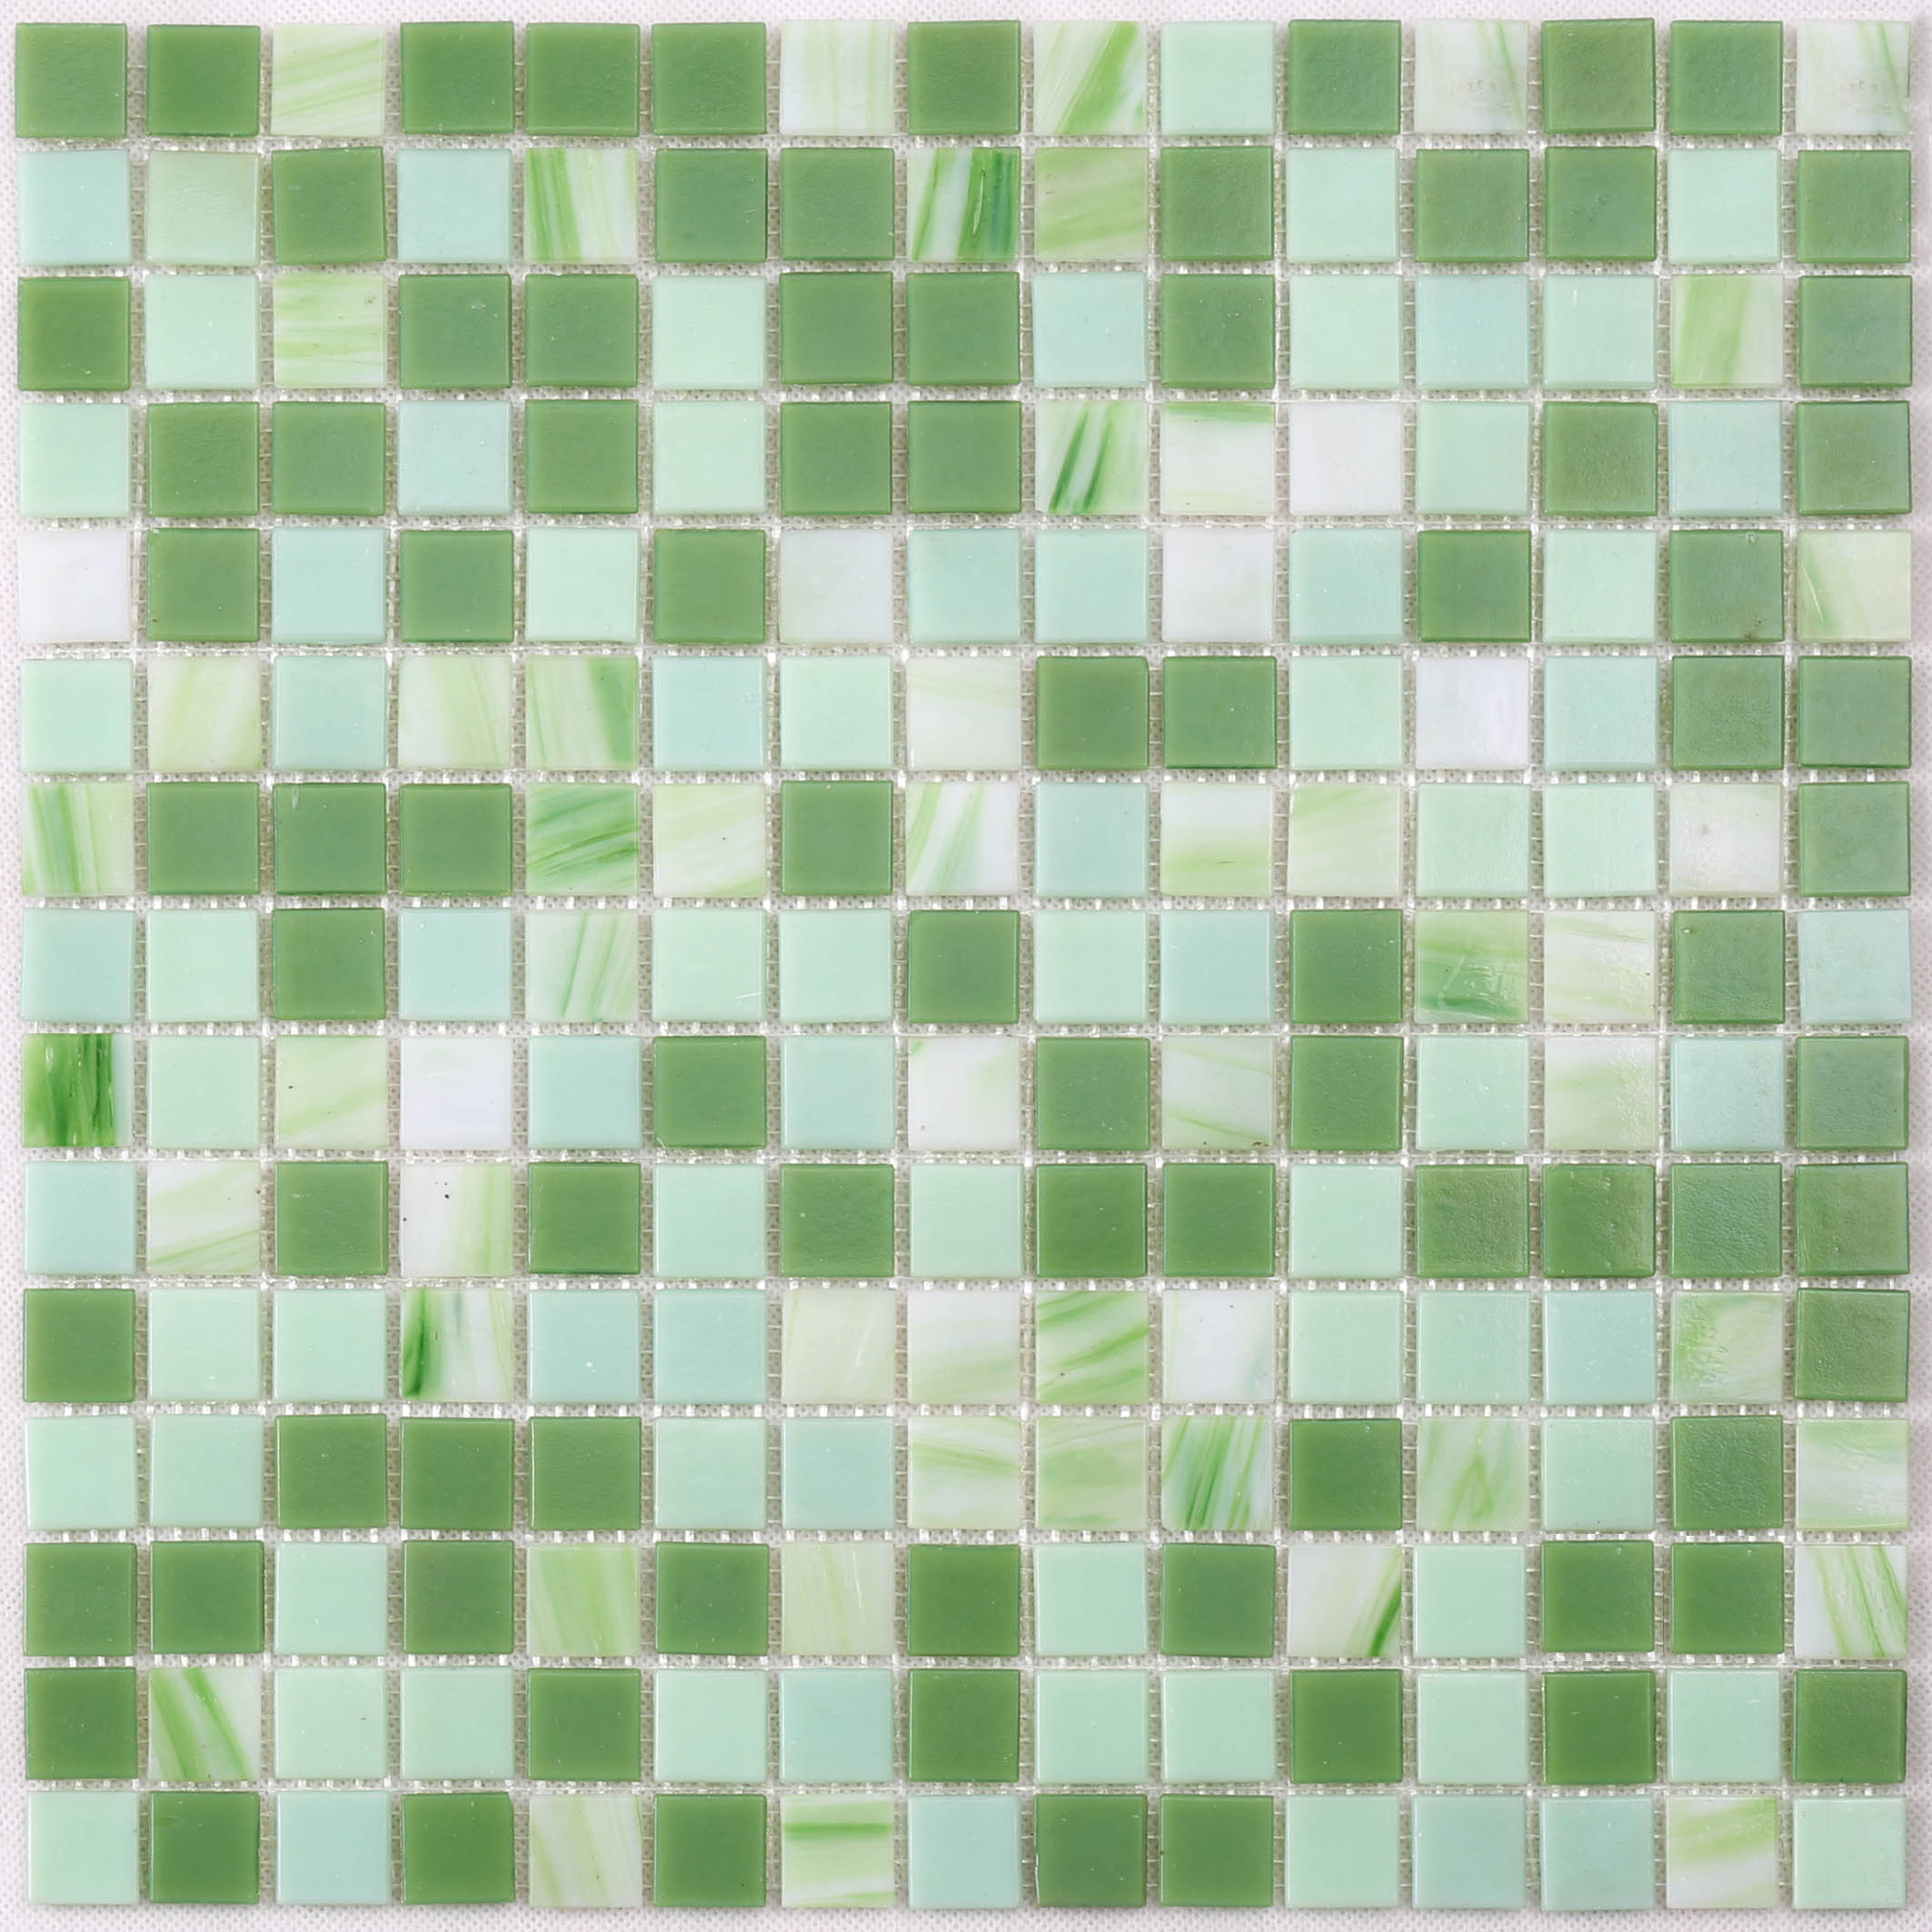 Heng Xing-Pool Step Tile, Pool Edge Tile Manufacturer | Pool Mosaic Tile-1